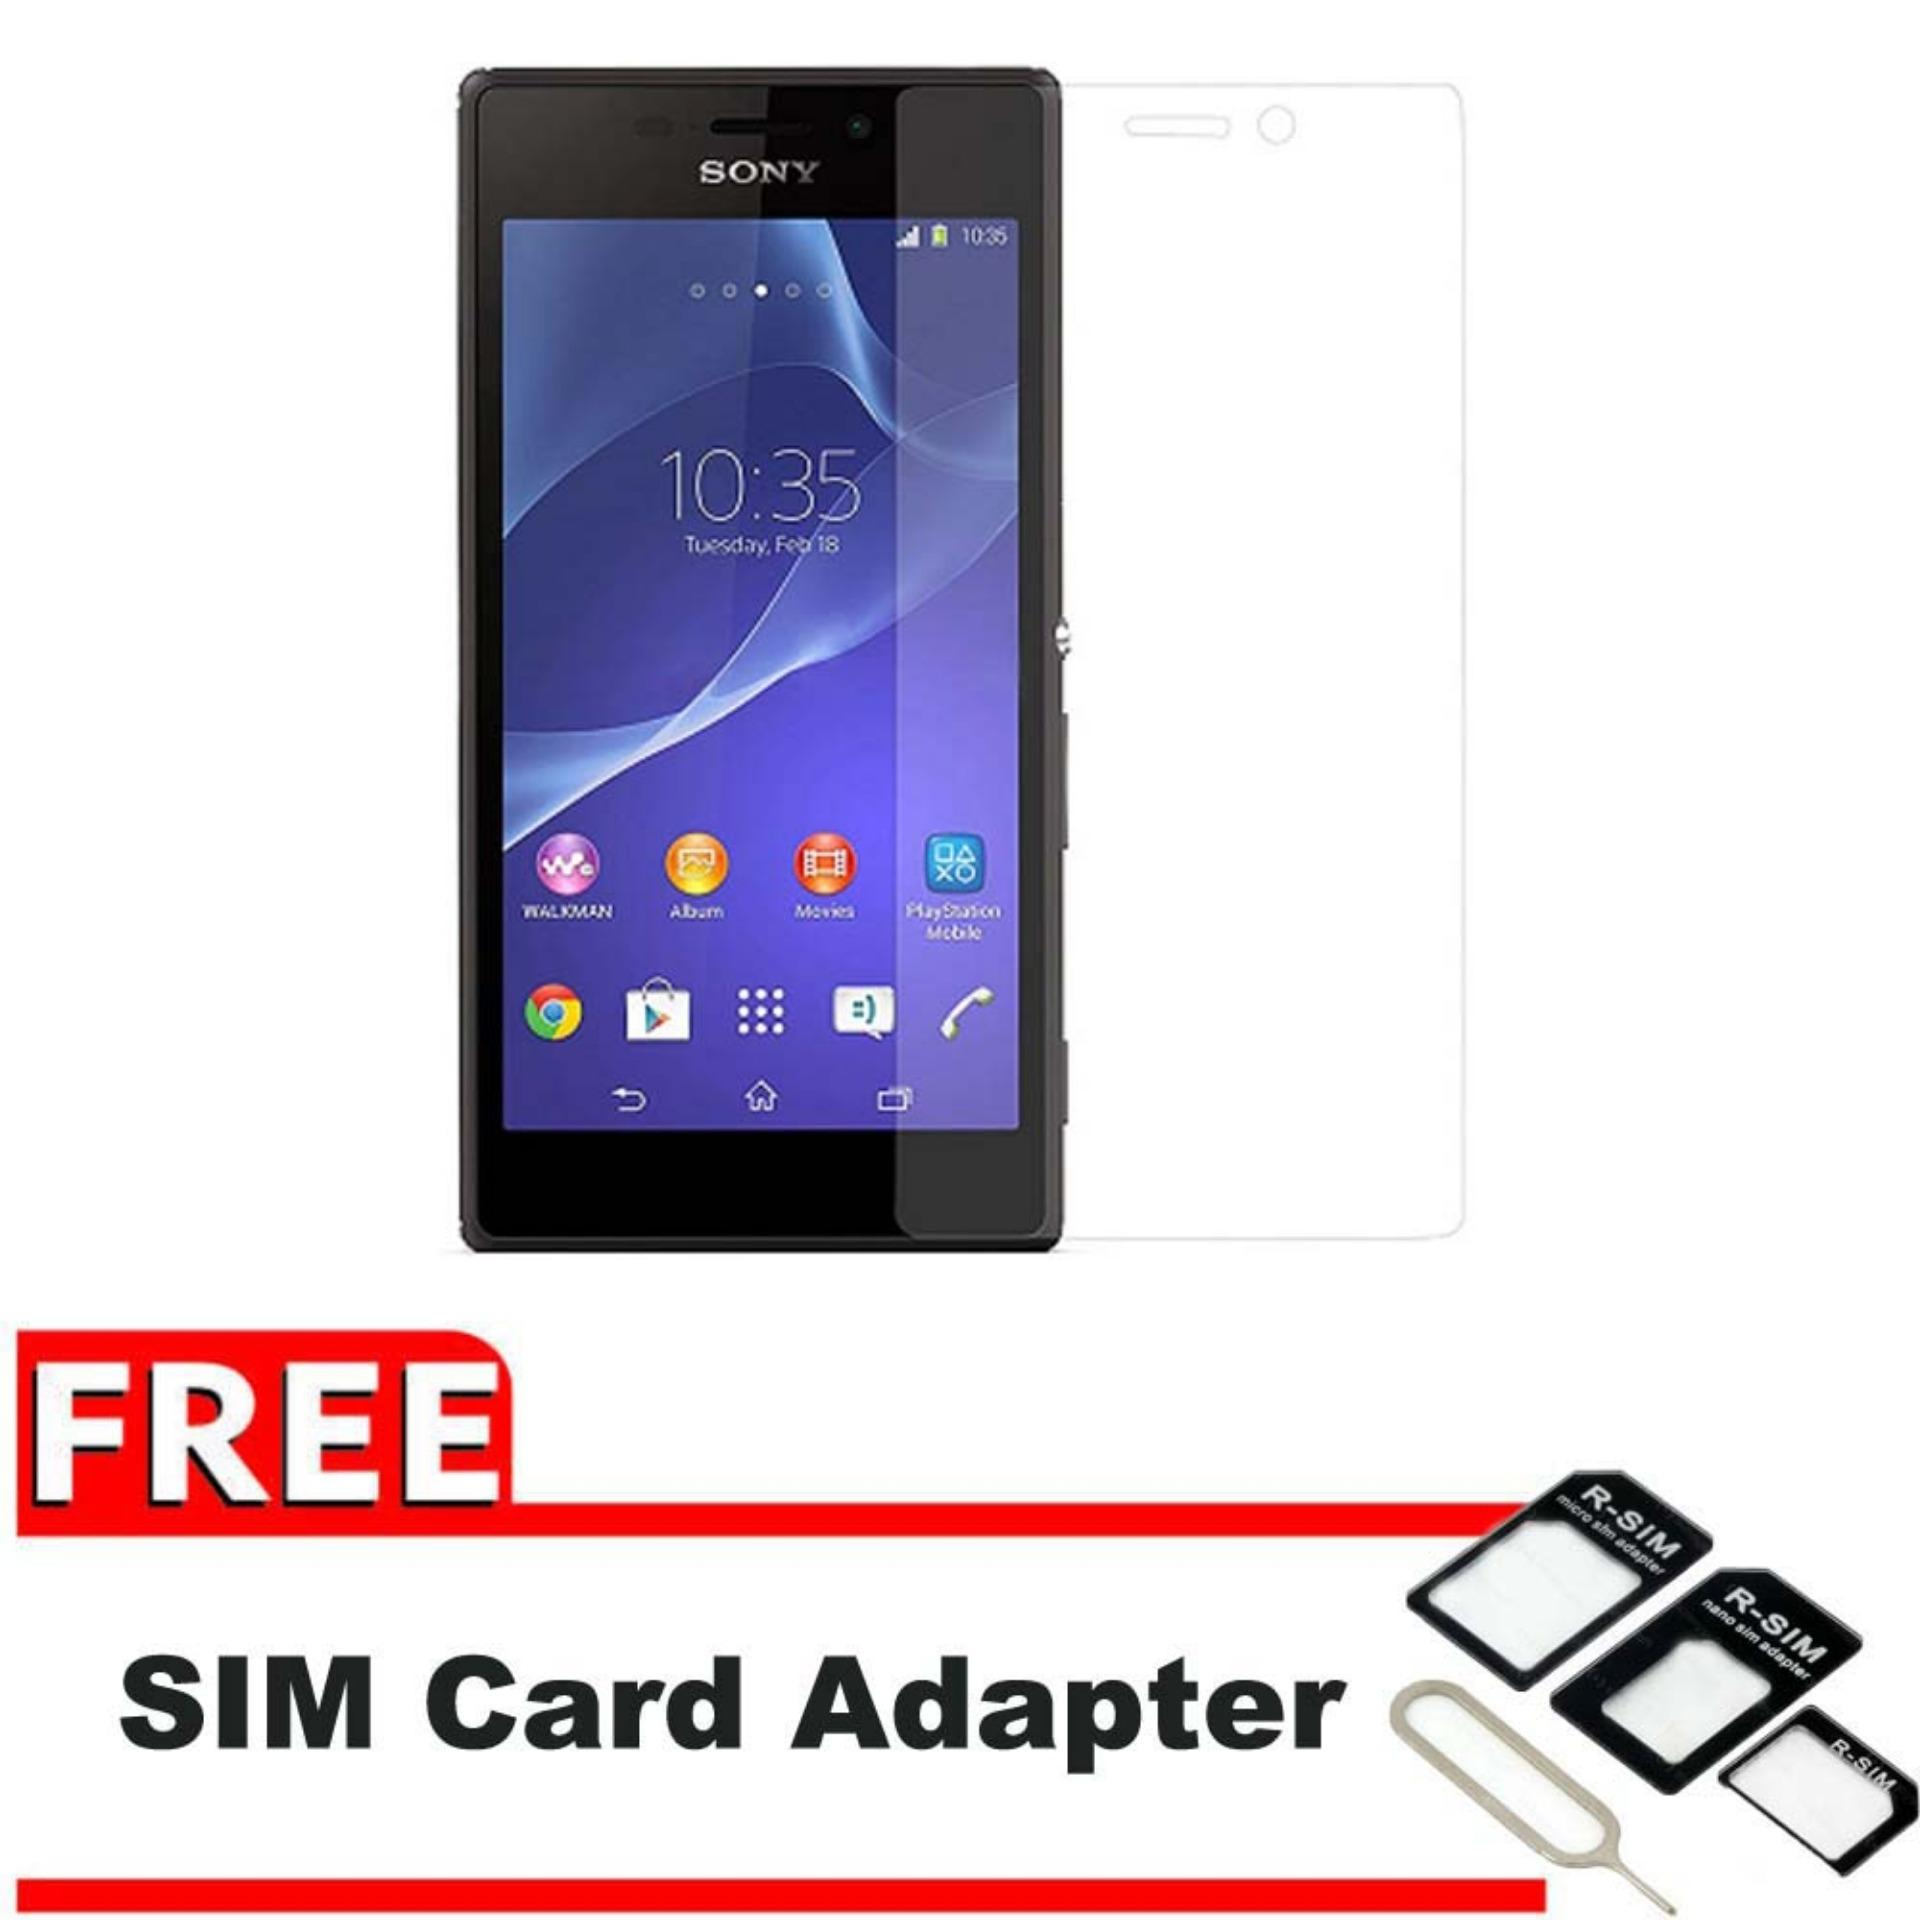 Vn Sony Experia Xperia M2 4 8″ Aqua Tempered Glass 9H Screen Protector 0 32mm Gratis Free Adapter OTG – Bening Transparan